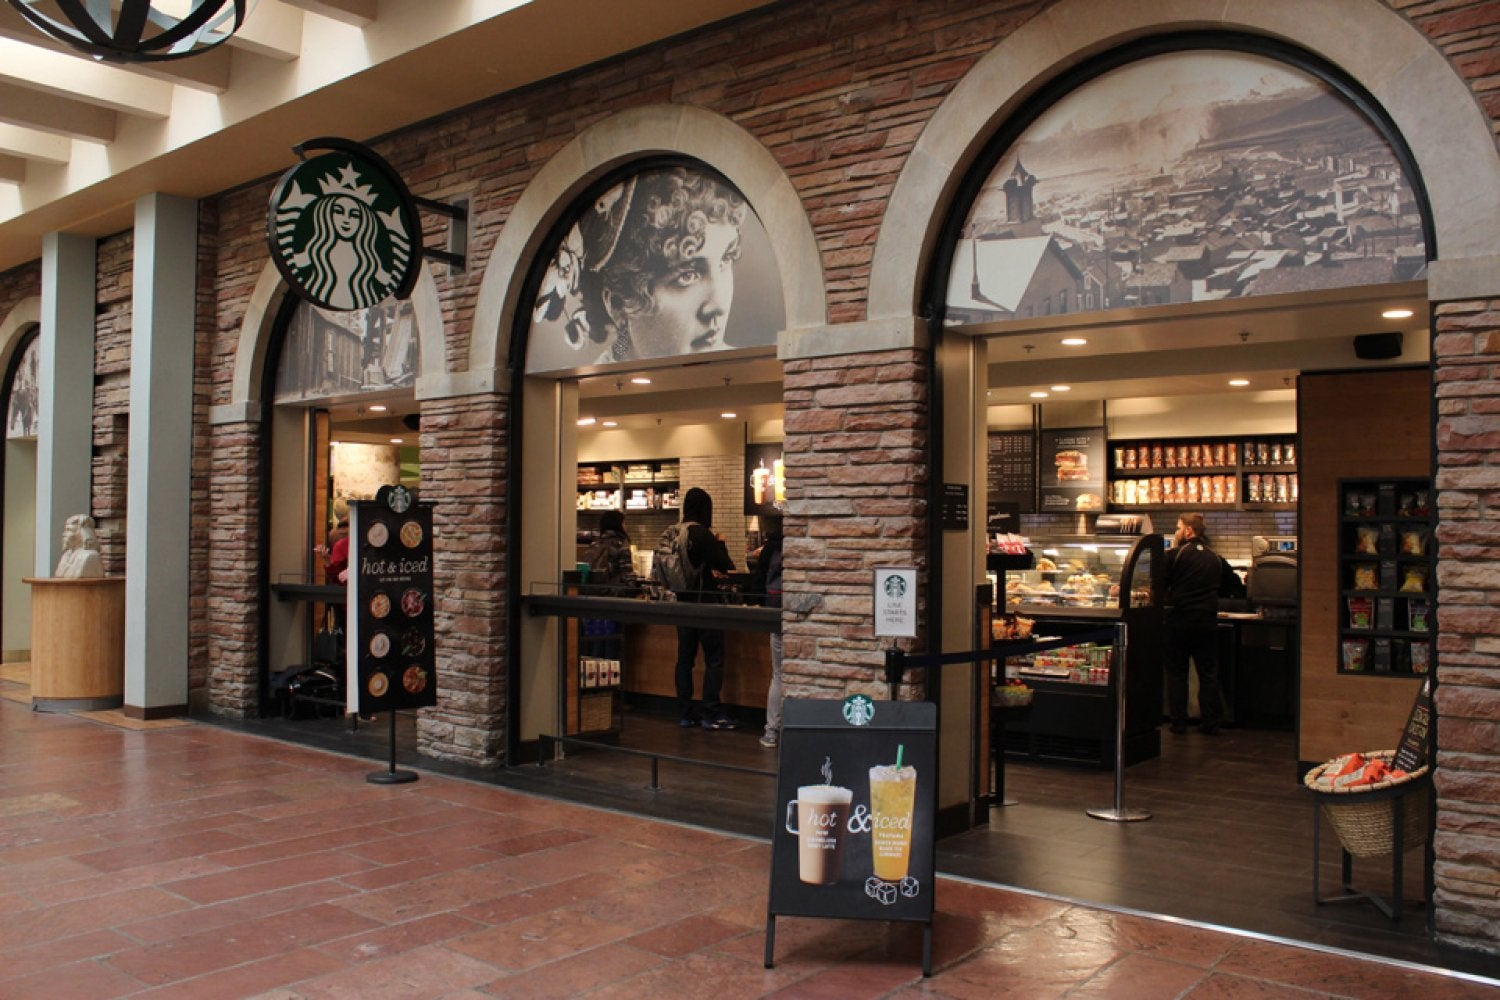 Starbucks now open in the UMC, first floor